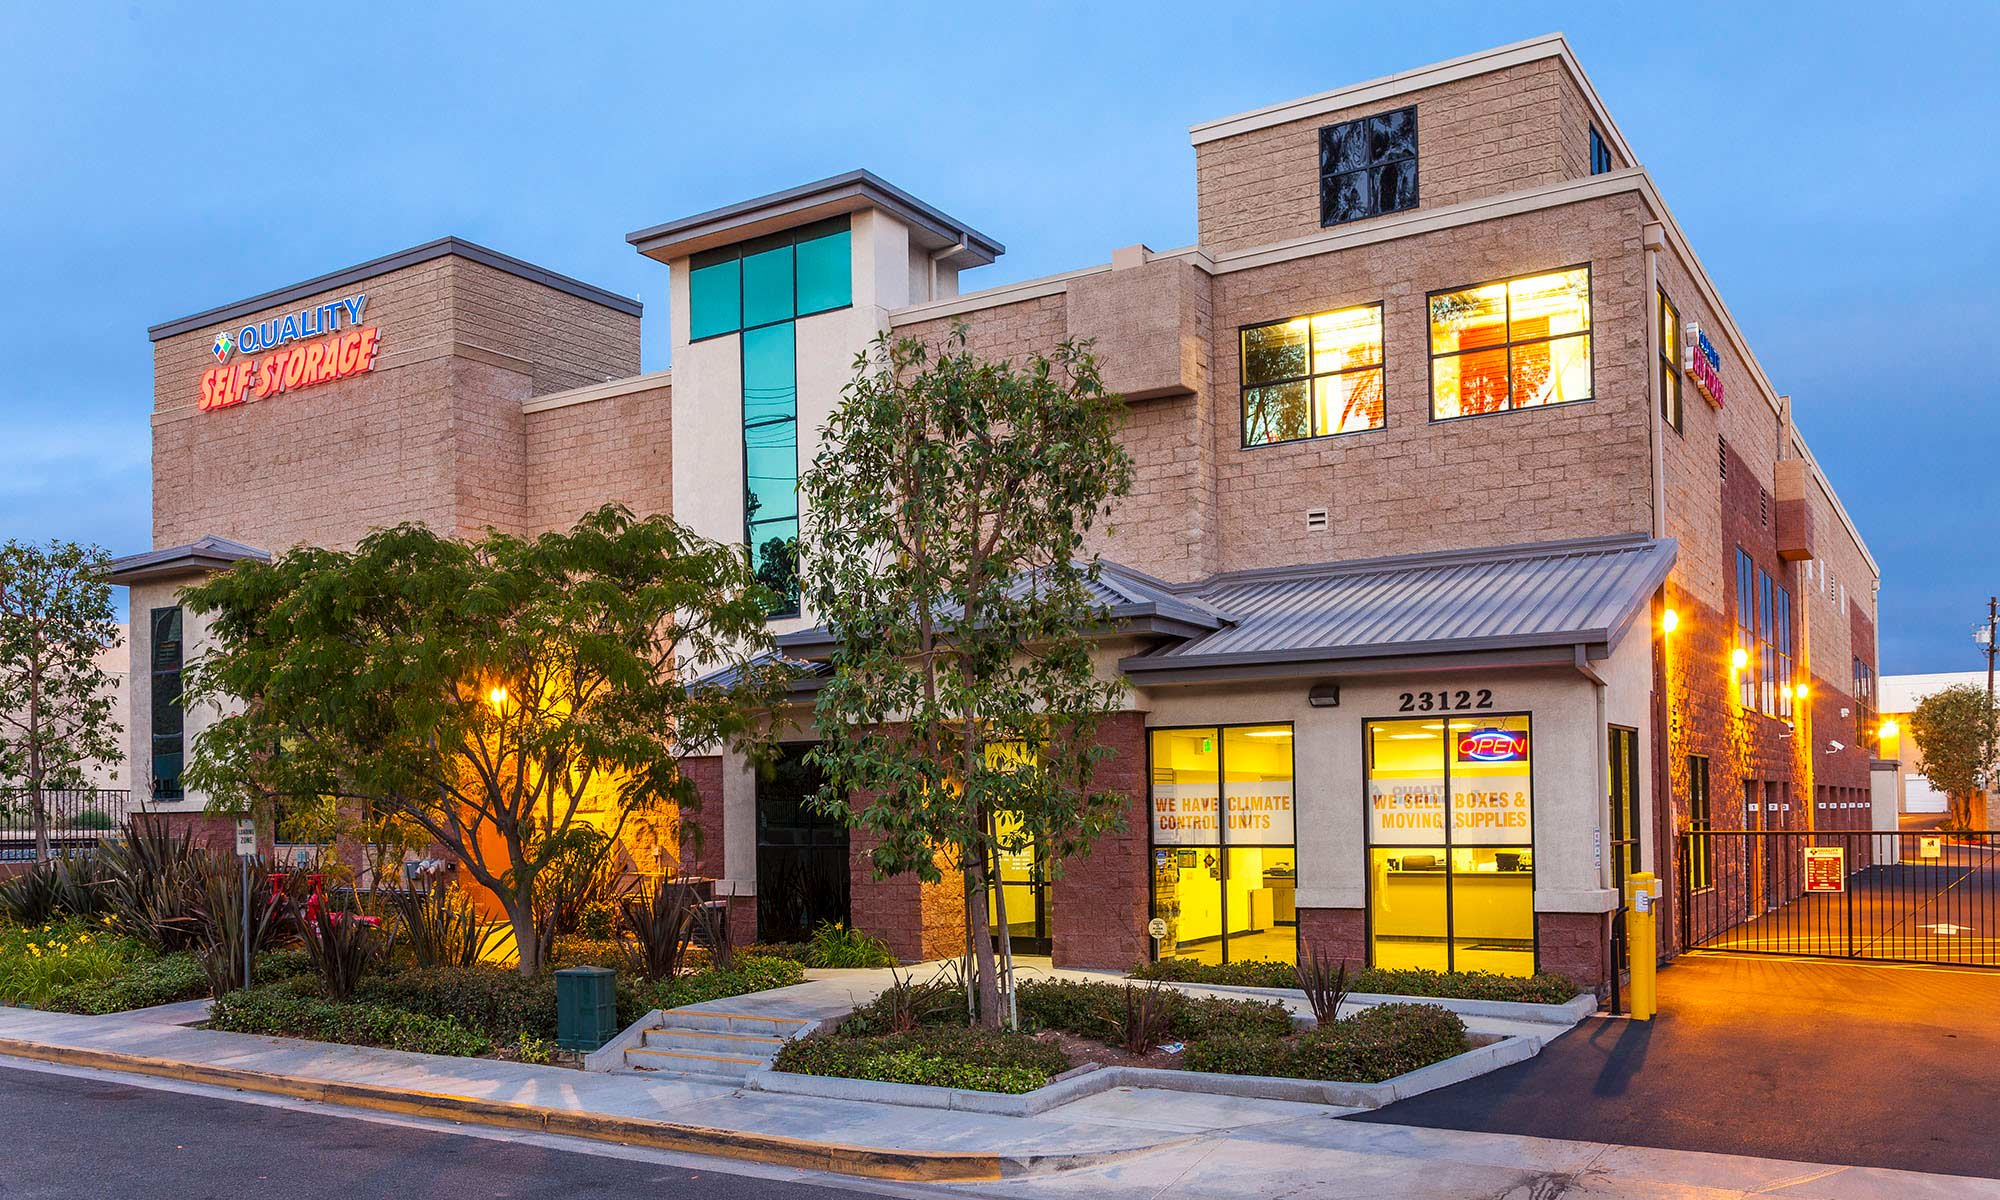 Learn more about self storage in Lake Forest CA.